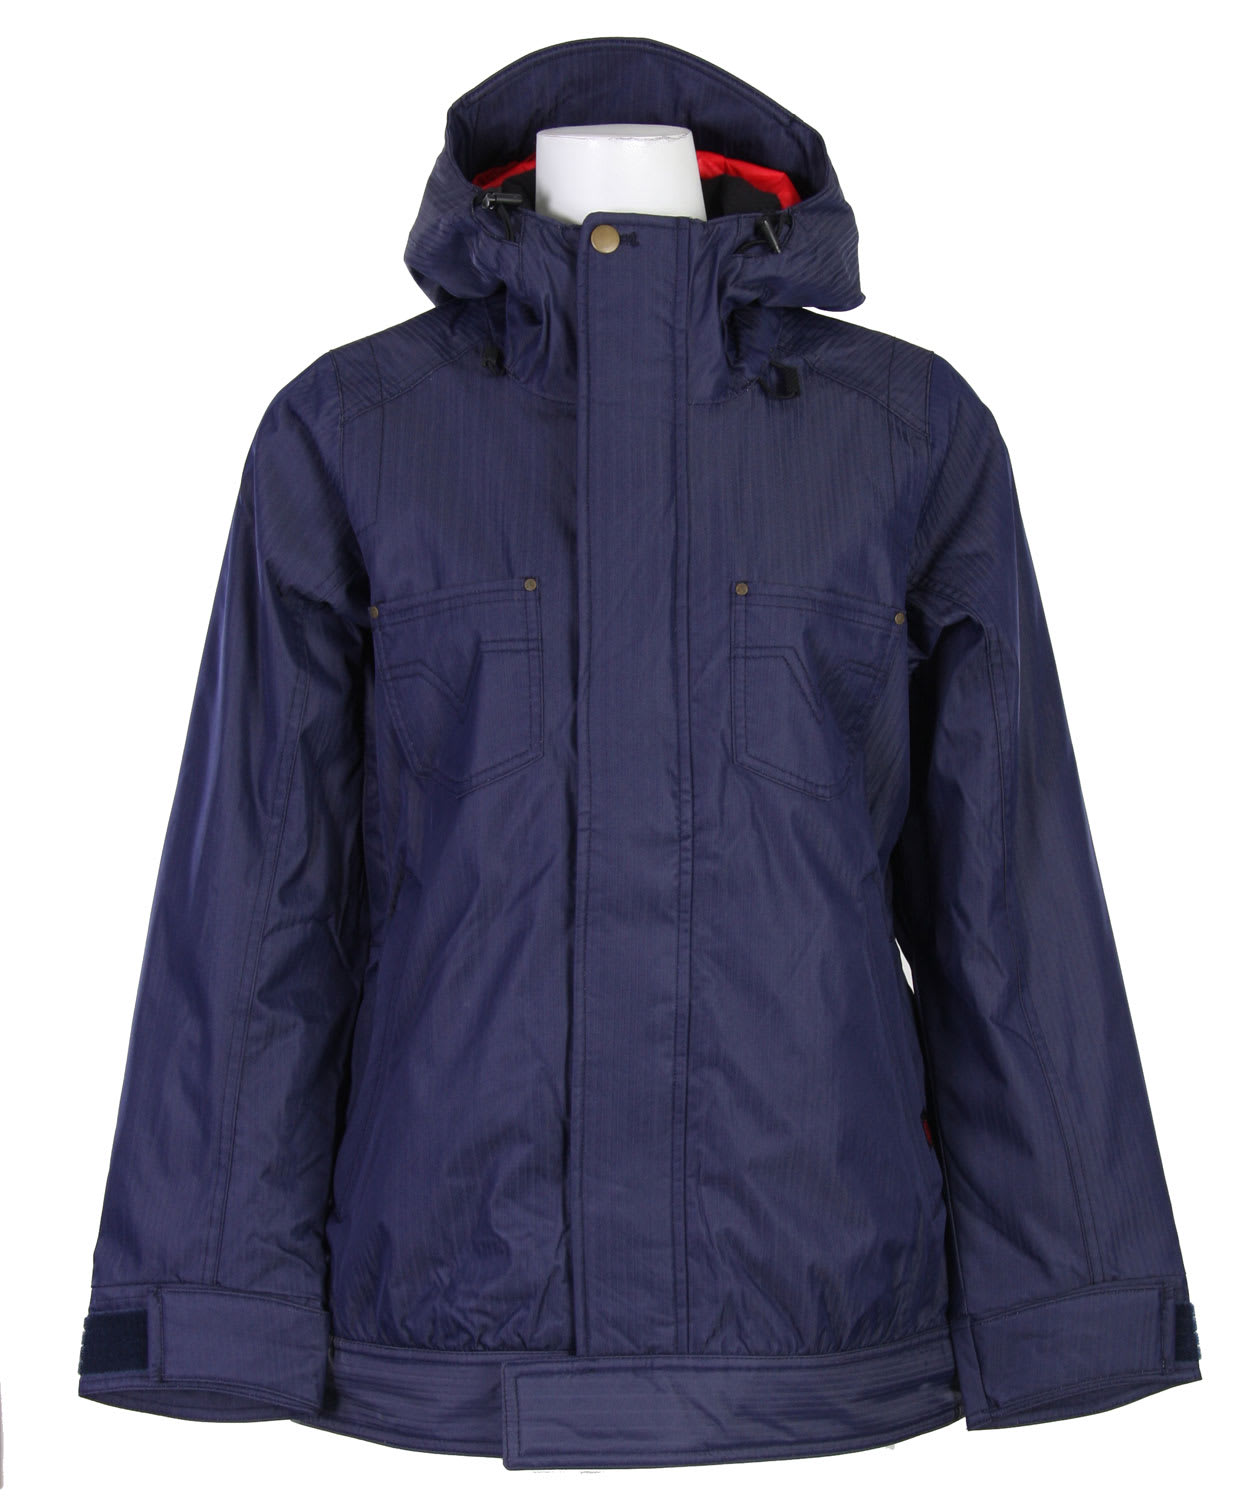 Shop for Vans Zissou Insulated Snowboard Jacket Peacoat - Women's